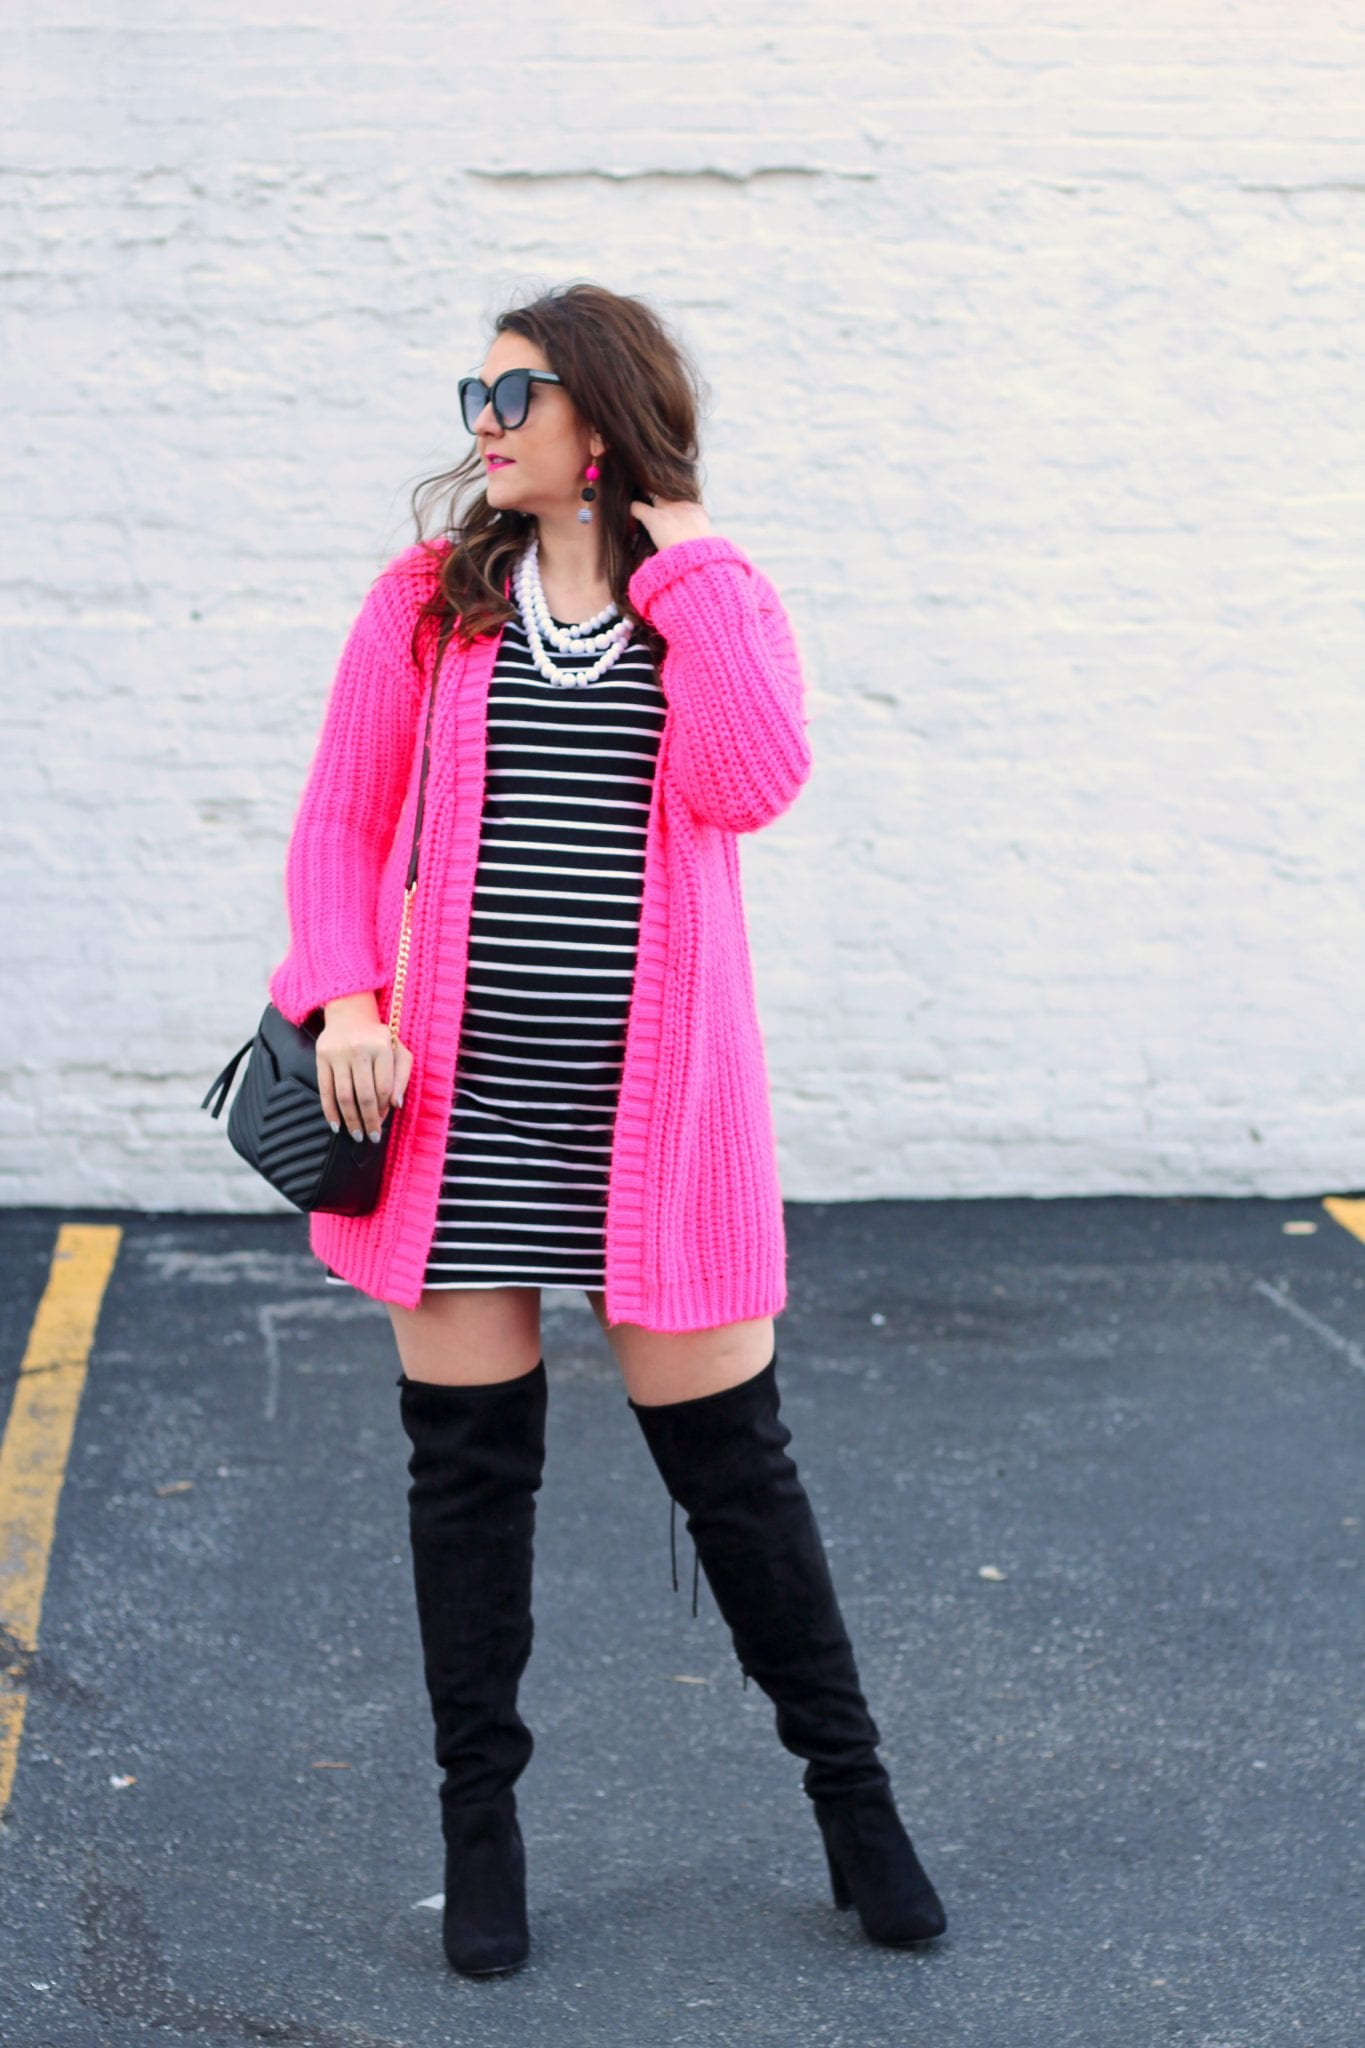 Neon pink cardigan, over the knee boots, and striped maternity dress 1